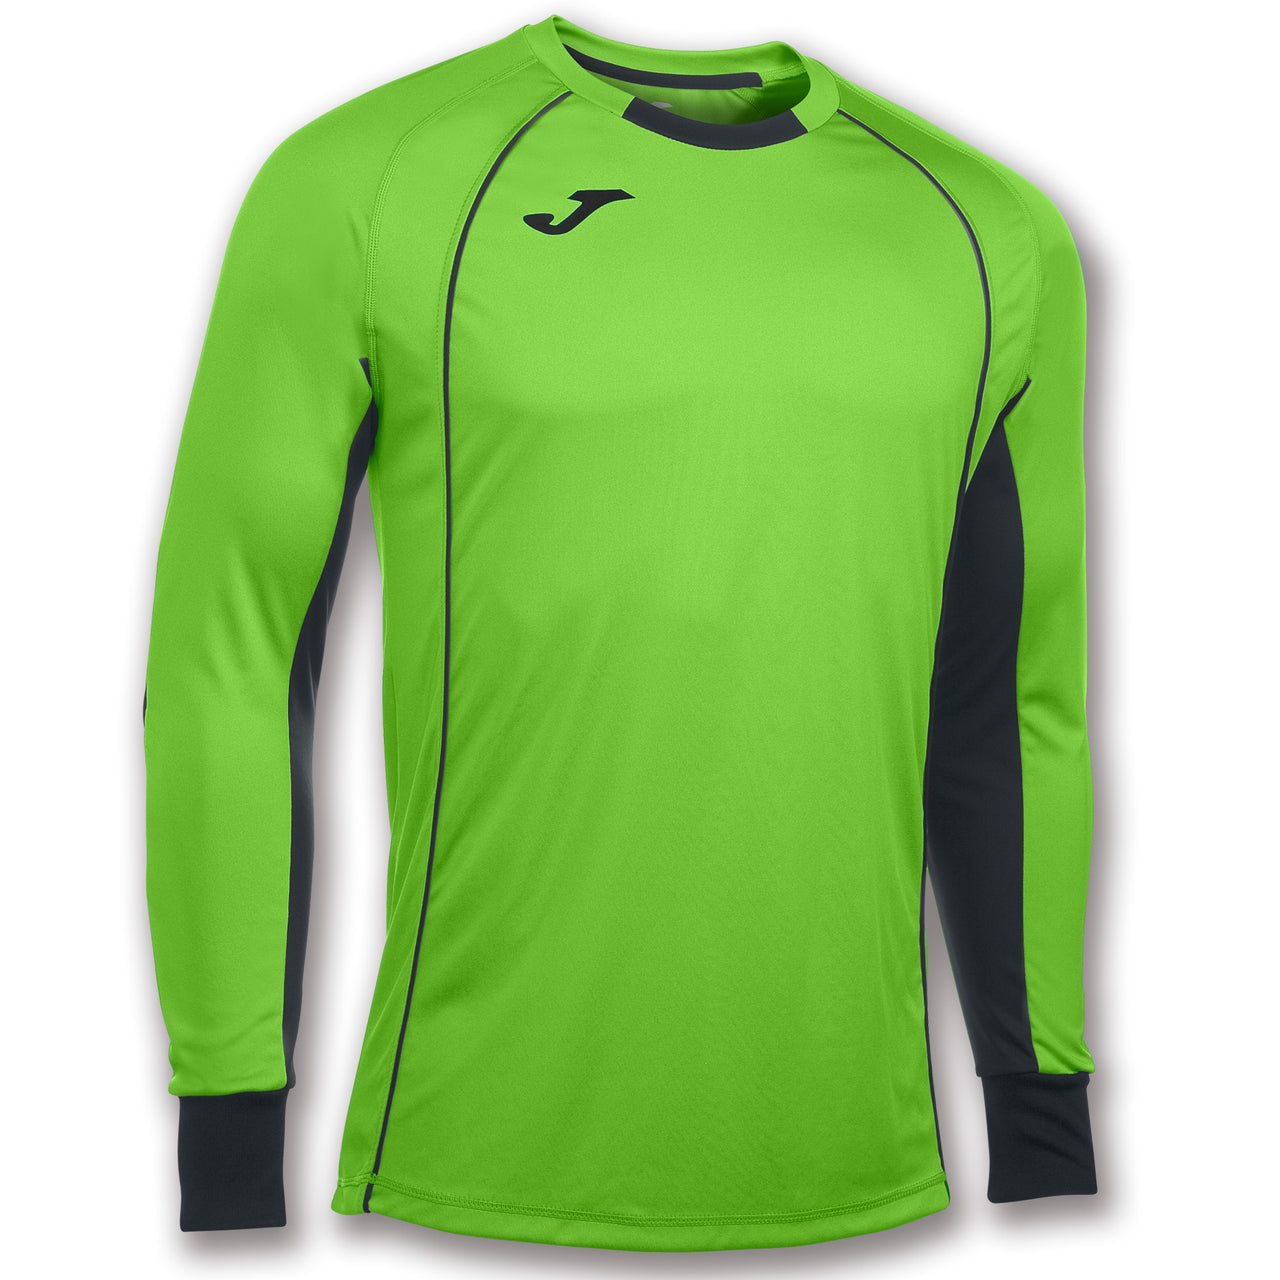 Joma Protection GK Jersey